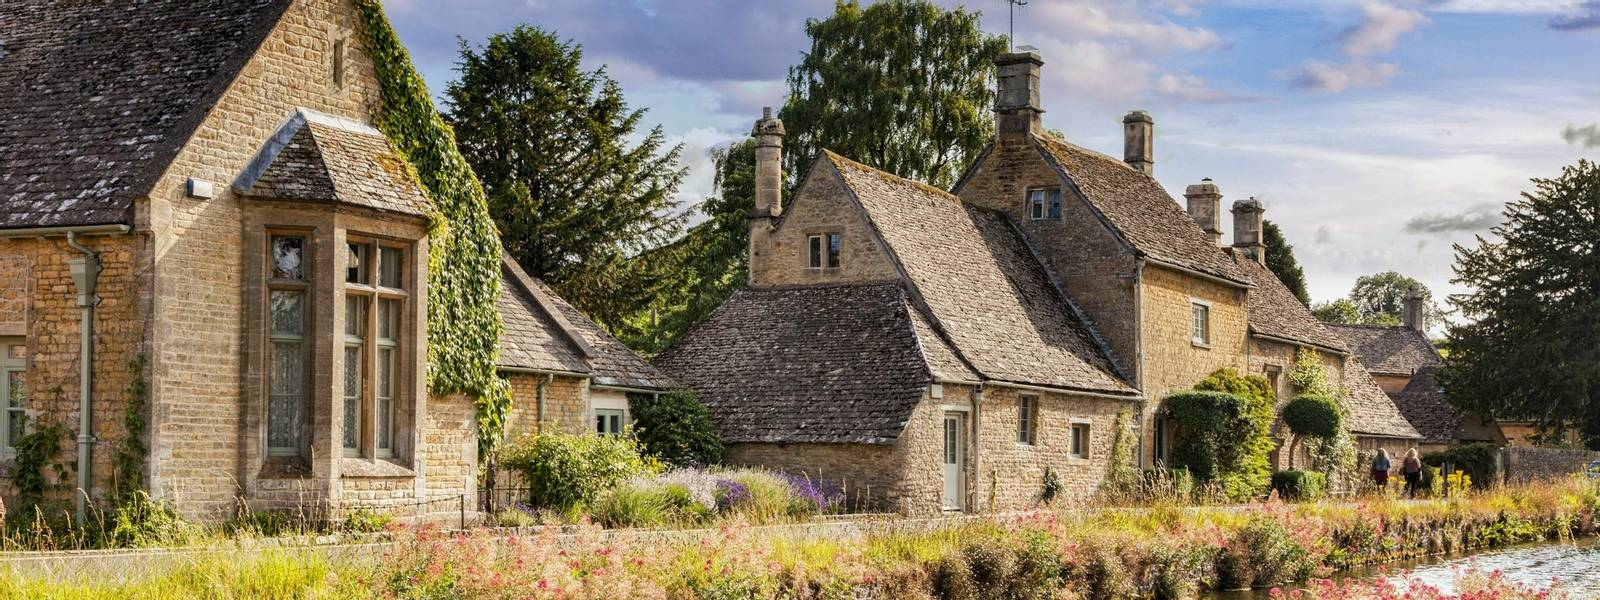 The Cotswolds village of Lower Slaughter, Gloucestershire, England